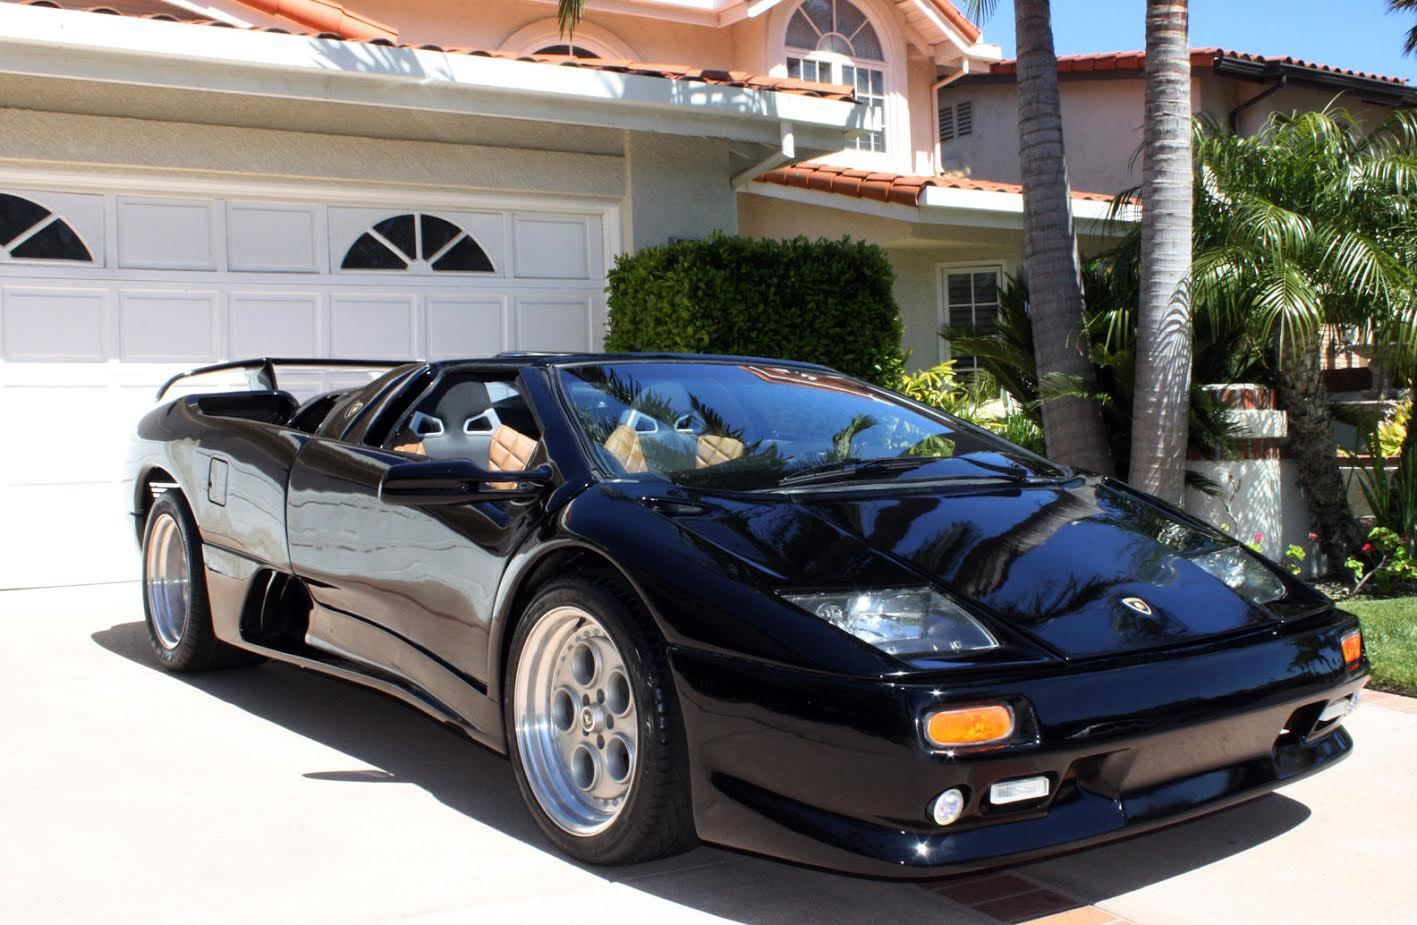 1999 Replica/Kit Makes 1999 Lamborghini Diablo Roadster  1999 Lamborghini Diablo Roadster Replica No Reserve Best Replica You'll Find